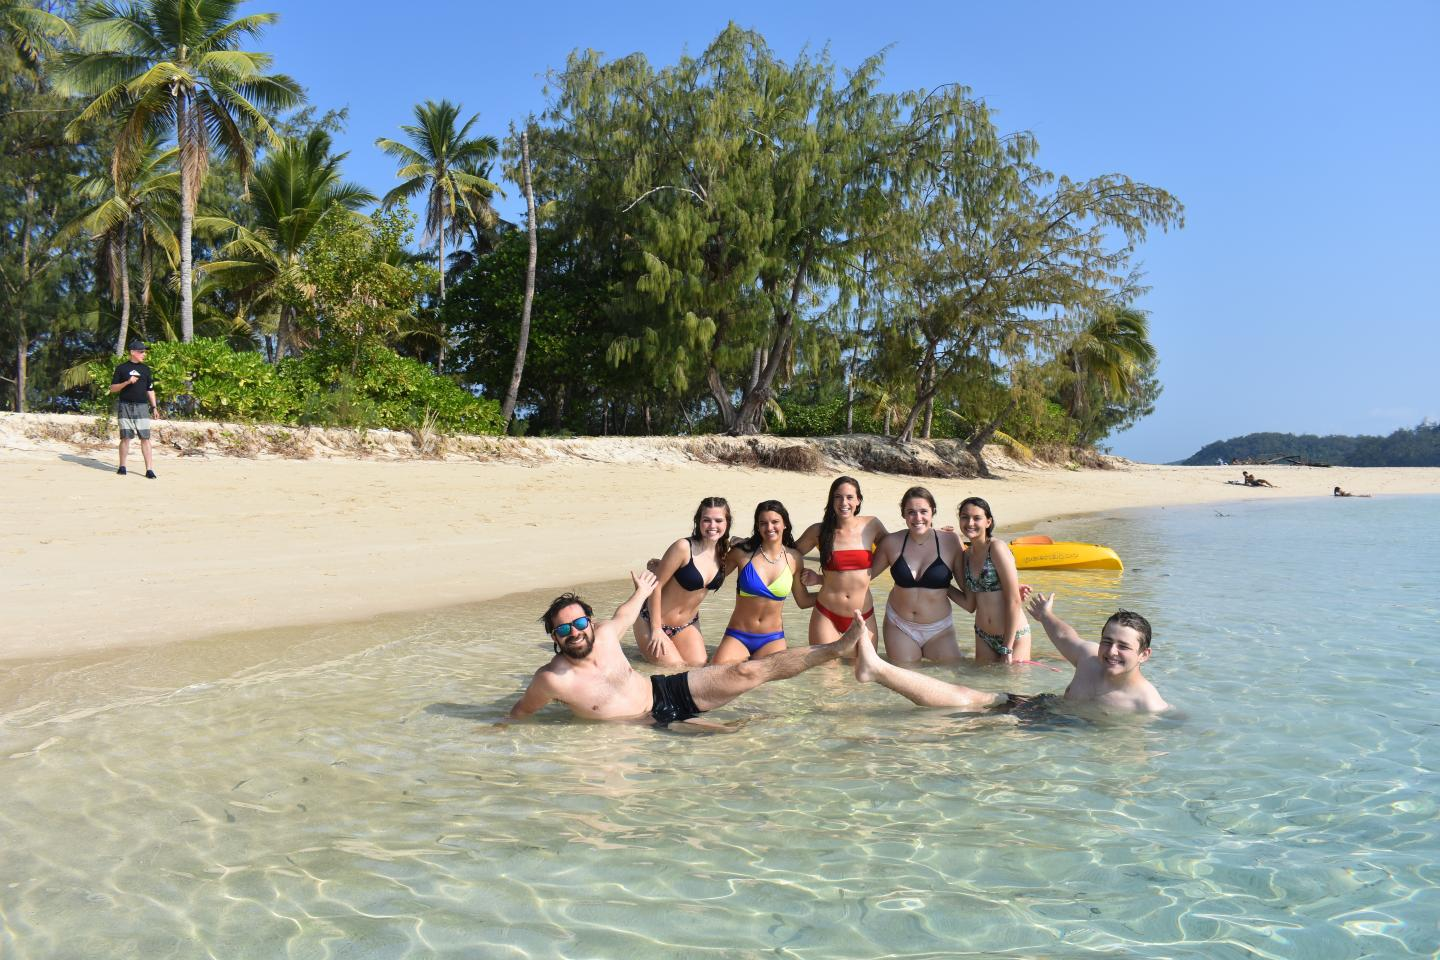 High school travelers relax in tropical paradise on their summer teen tour to Fiji.